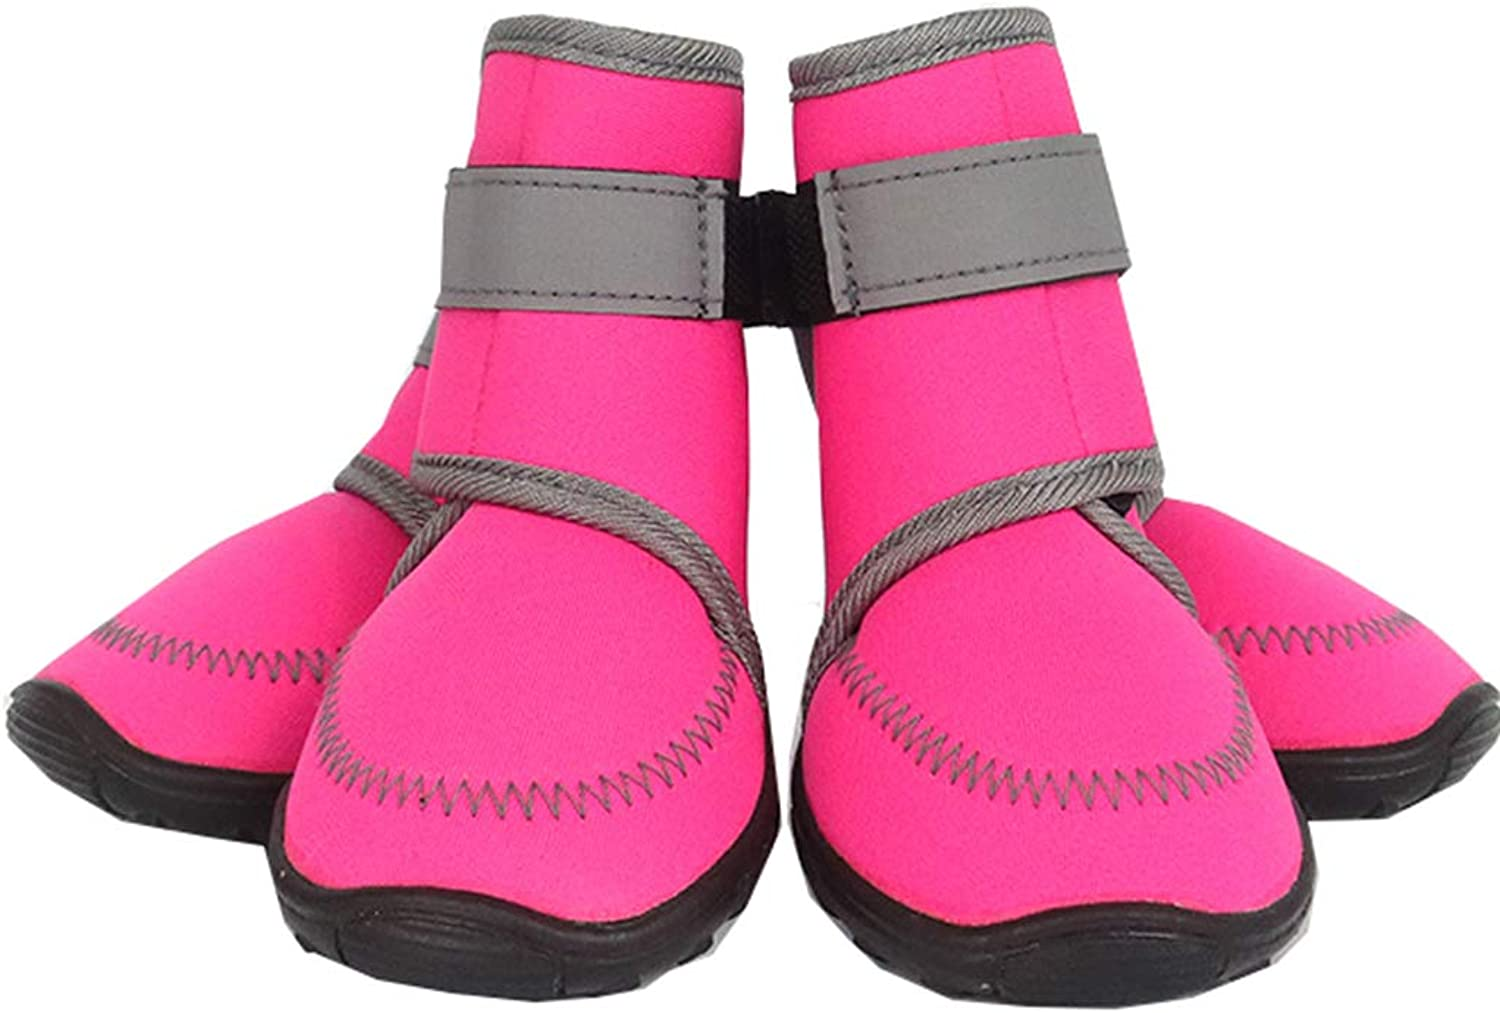 Pet Dog shoes, Autumn and Winter Waterproof Fabric Fashion Warm, Large, Medium and Small Dogs Waterproof Sports shoes,Pink,XXL